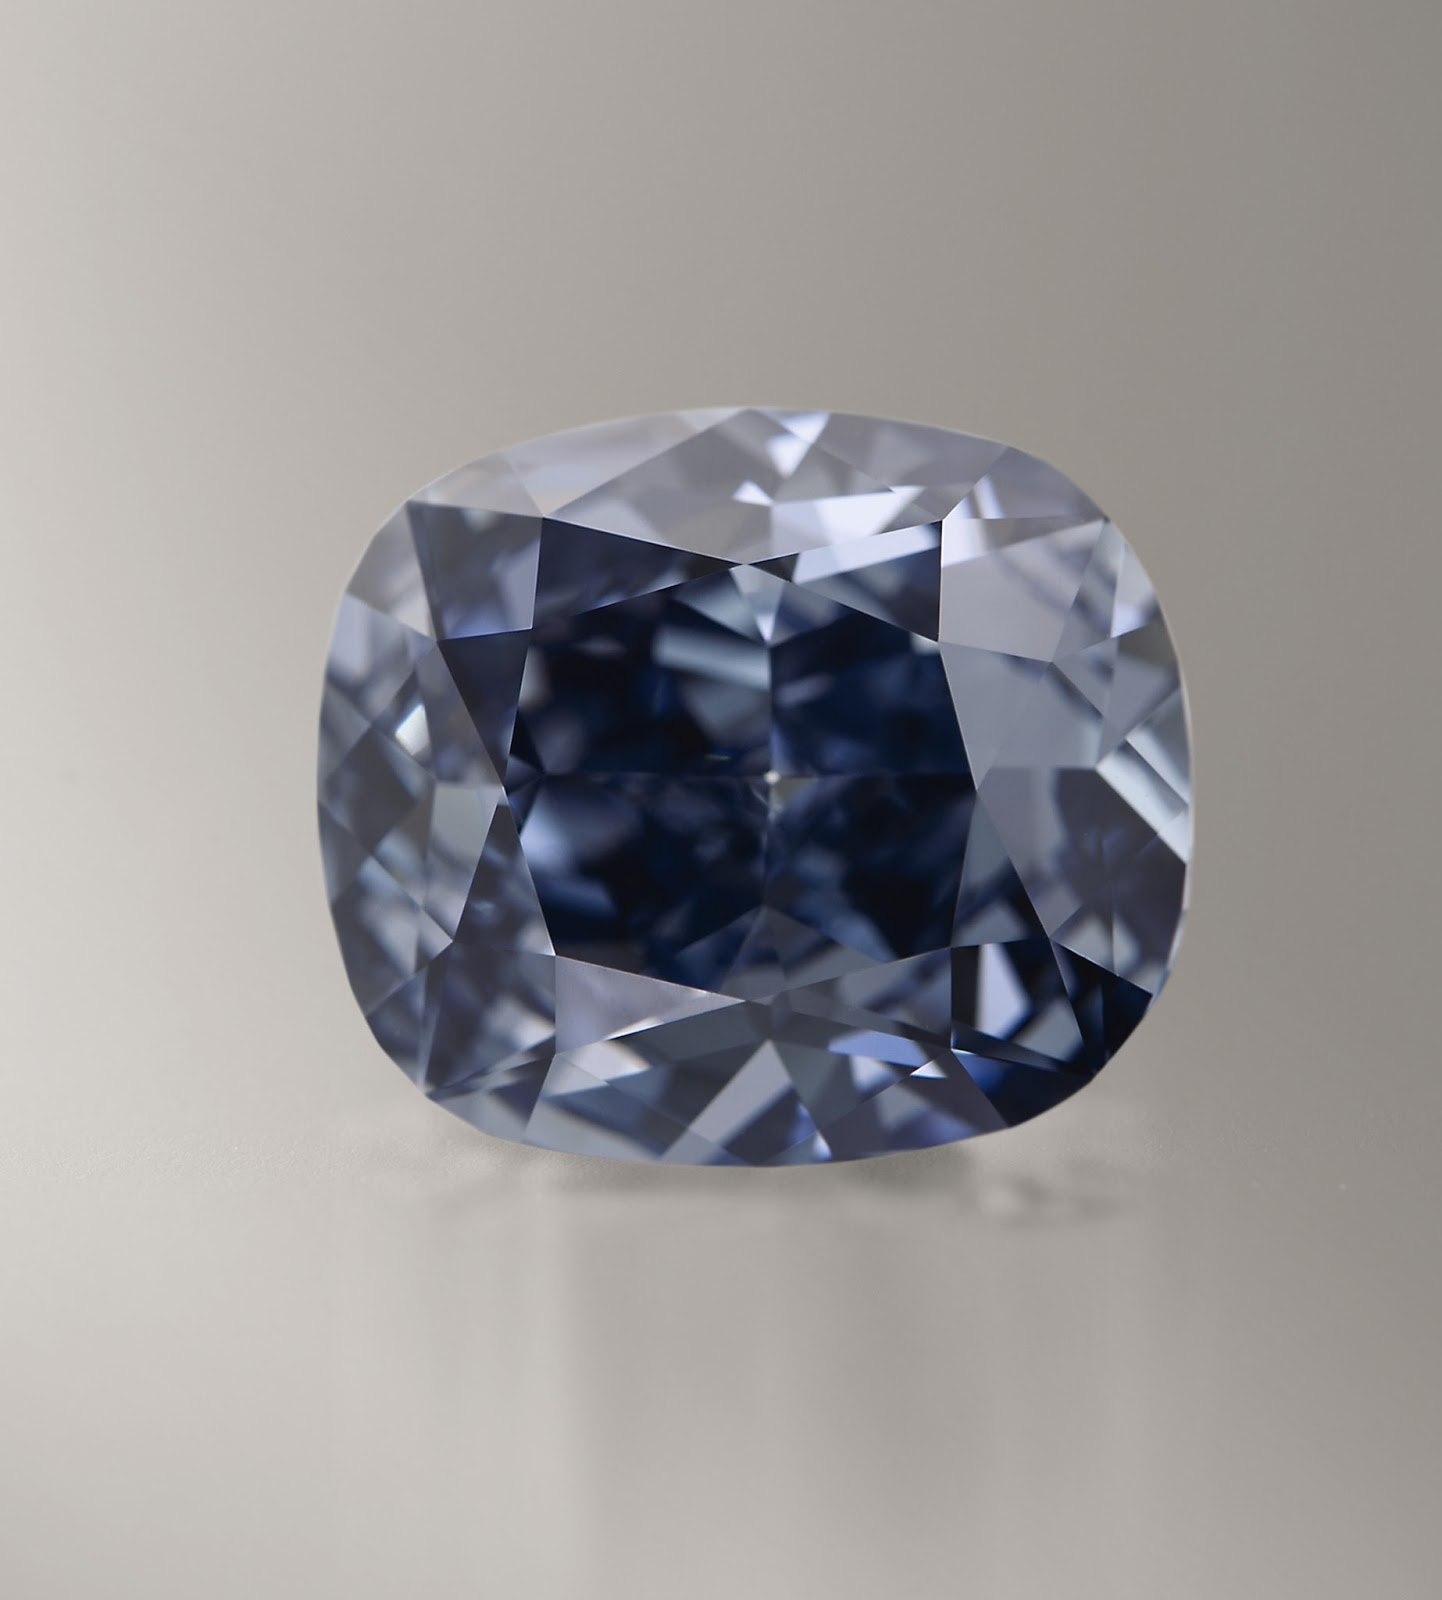 Kee Hua Chee Live Sotheby S To Auction The 12 Carat Blue